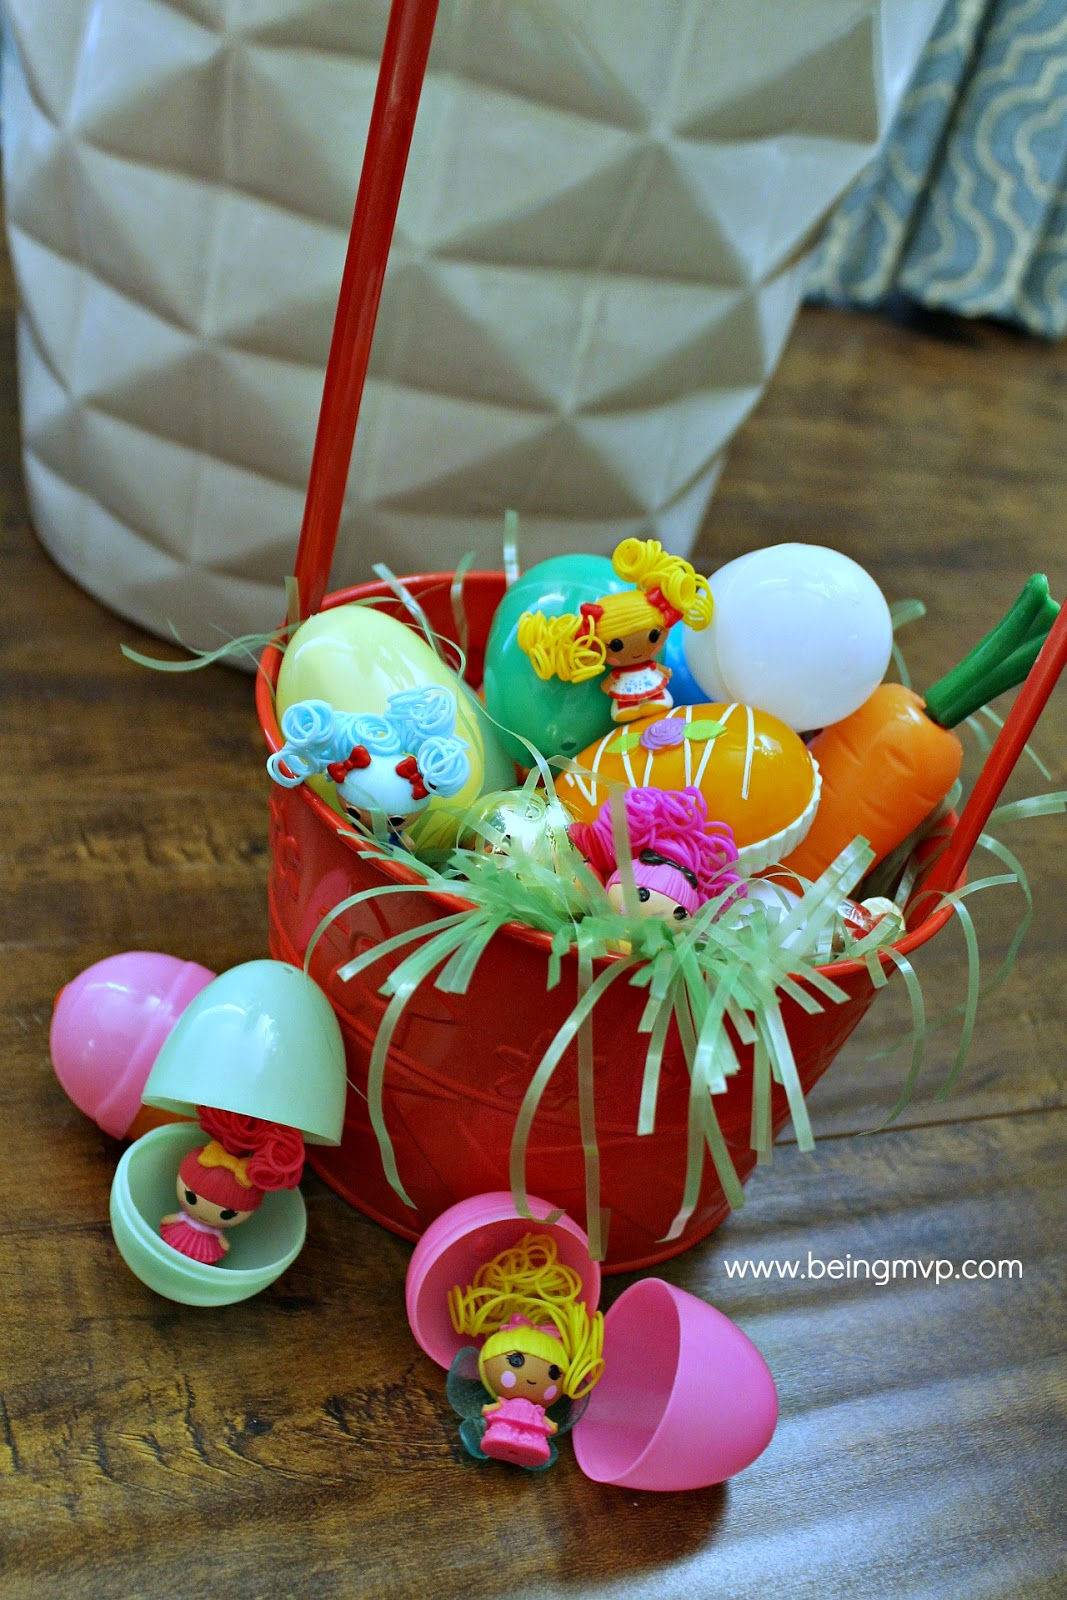 Being mvp fill your easter baskets with adorable lalaloopsy dolls they fit perfectly inside a plastic easter egg because they are only 15 tall and will be the best surprise during the hunt negle Choice Image